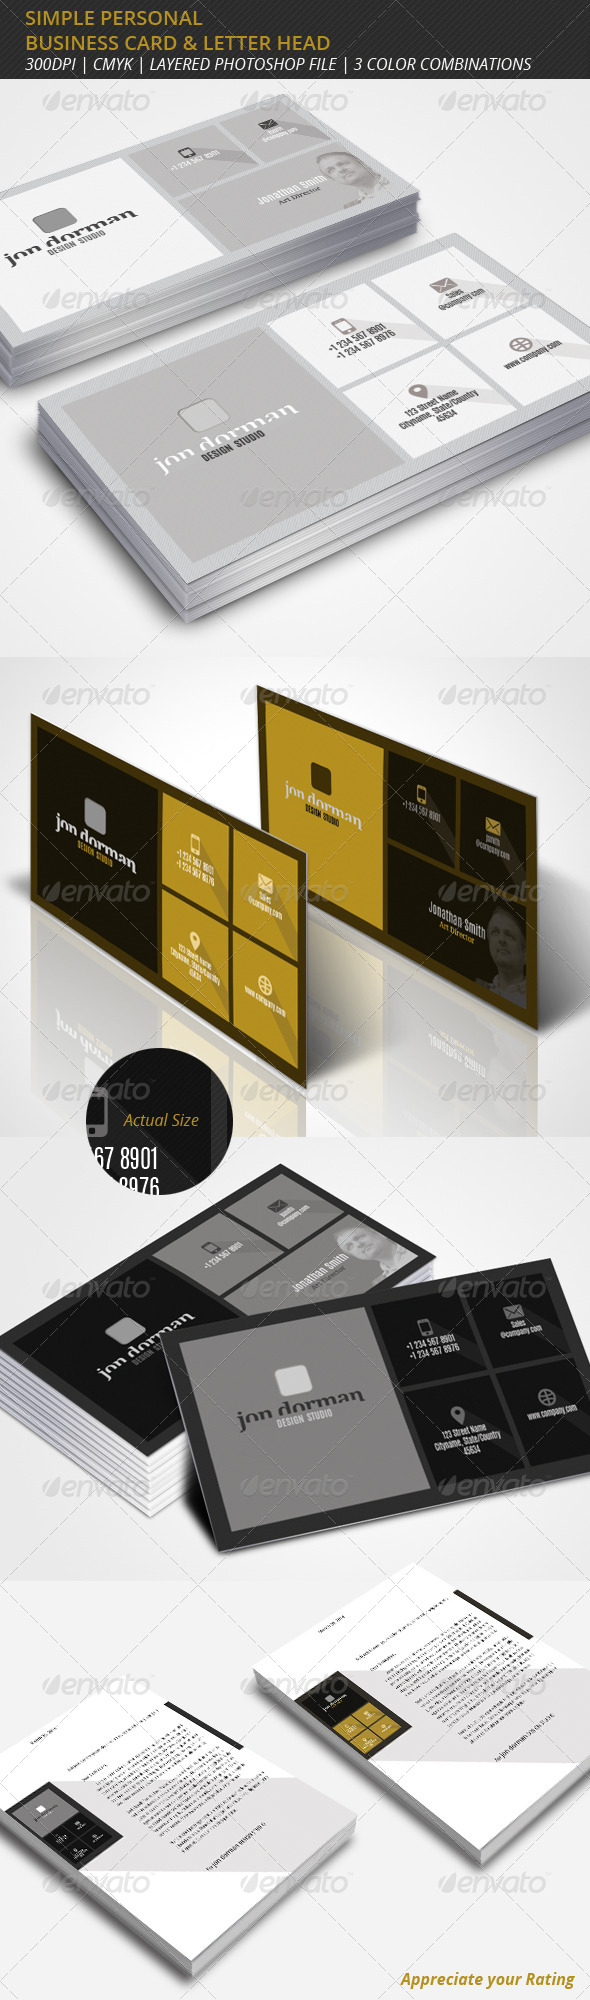 Simple Professional Business Card & Letterhead - Business Cards Print Templates